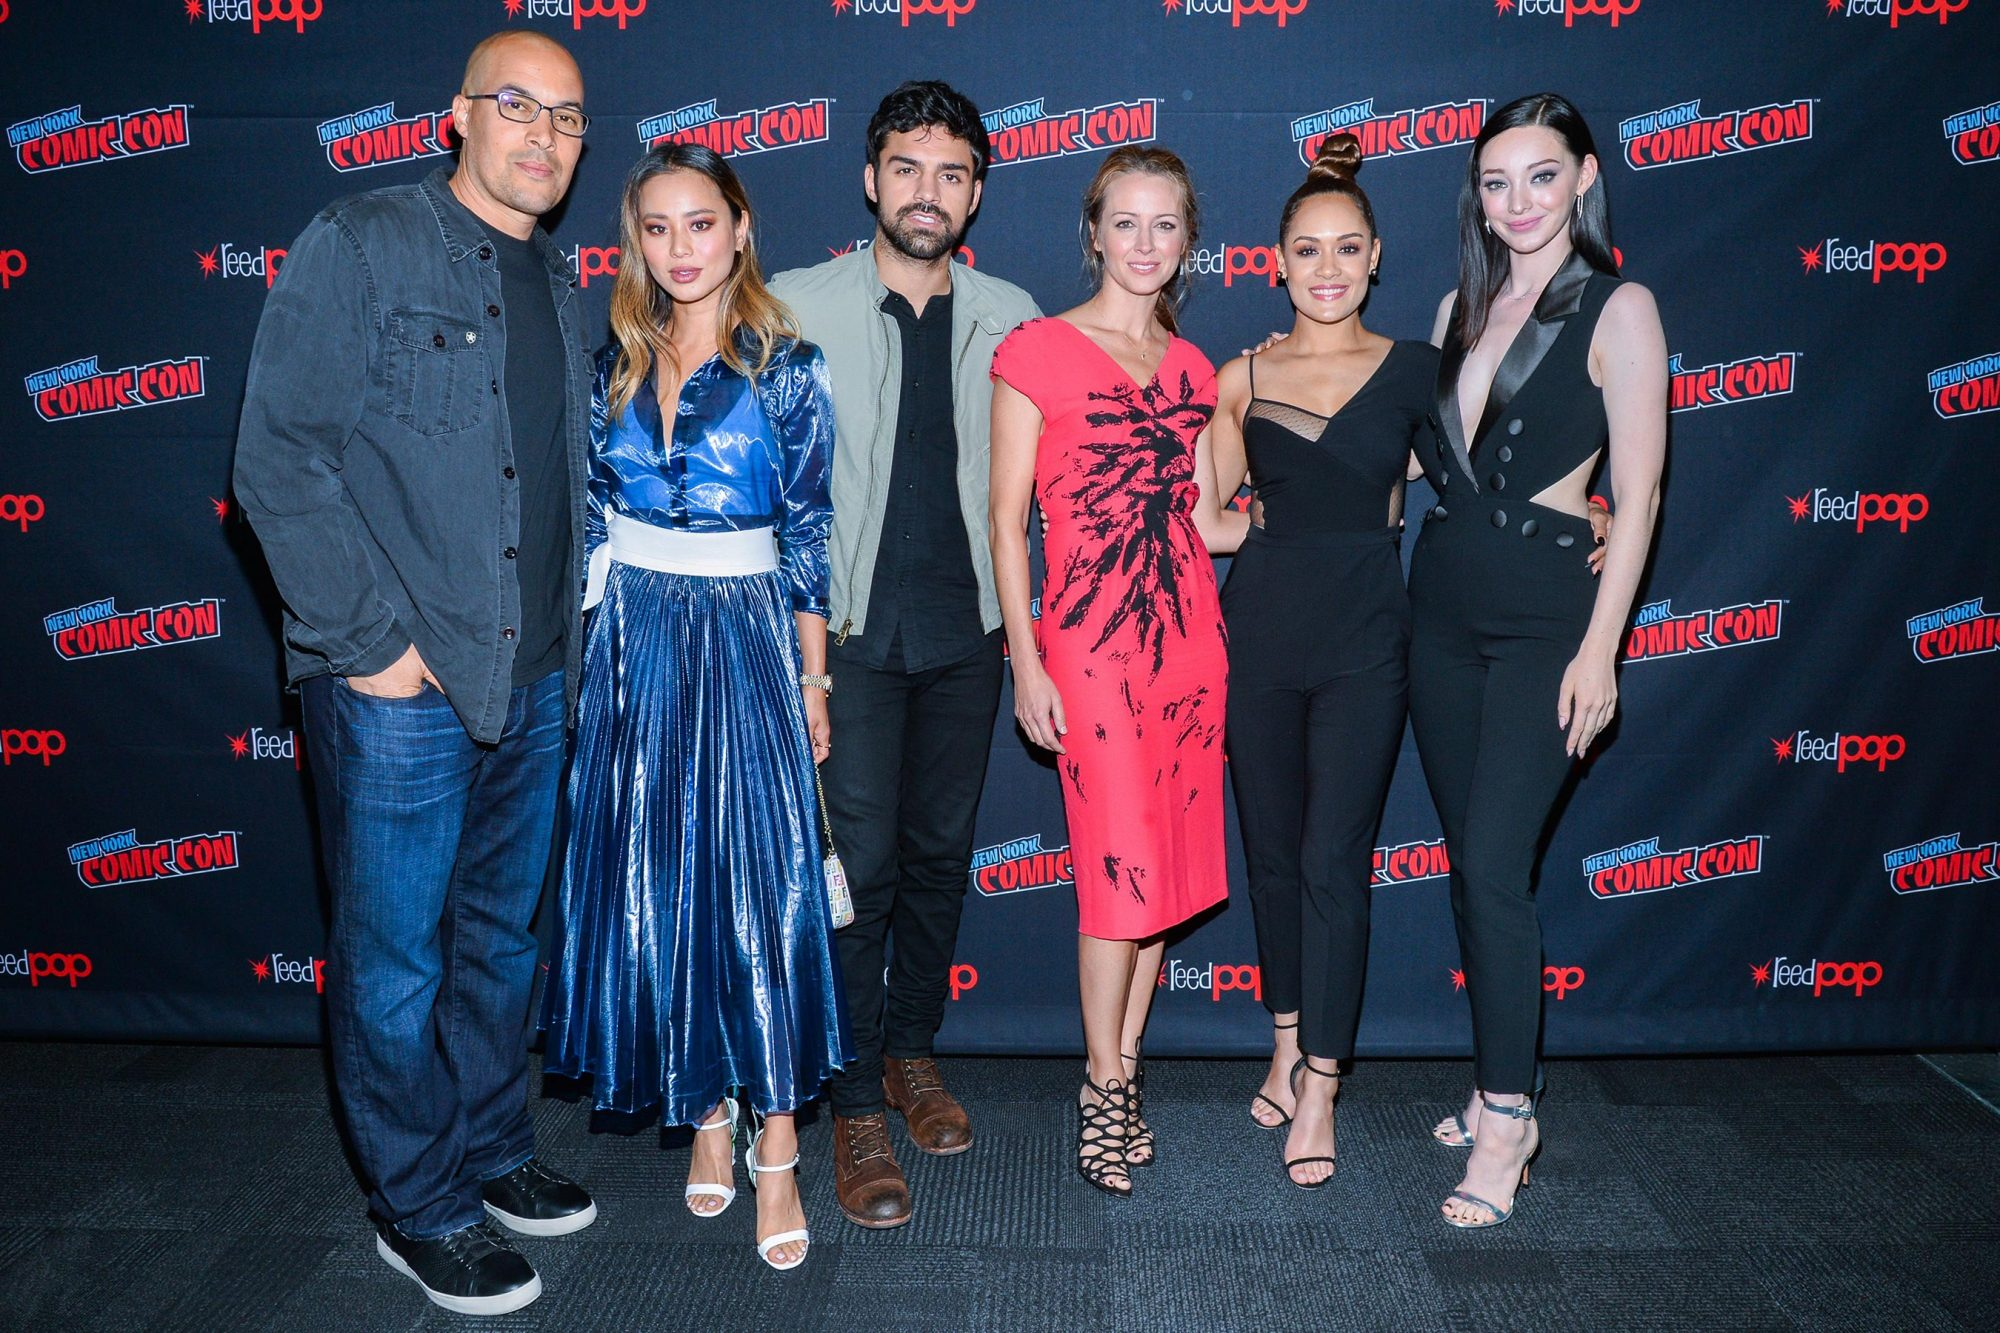 'The Gifted' TV show panel, New York Comic Con, USA - 07 Oct 2018